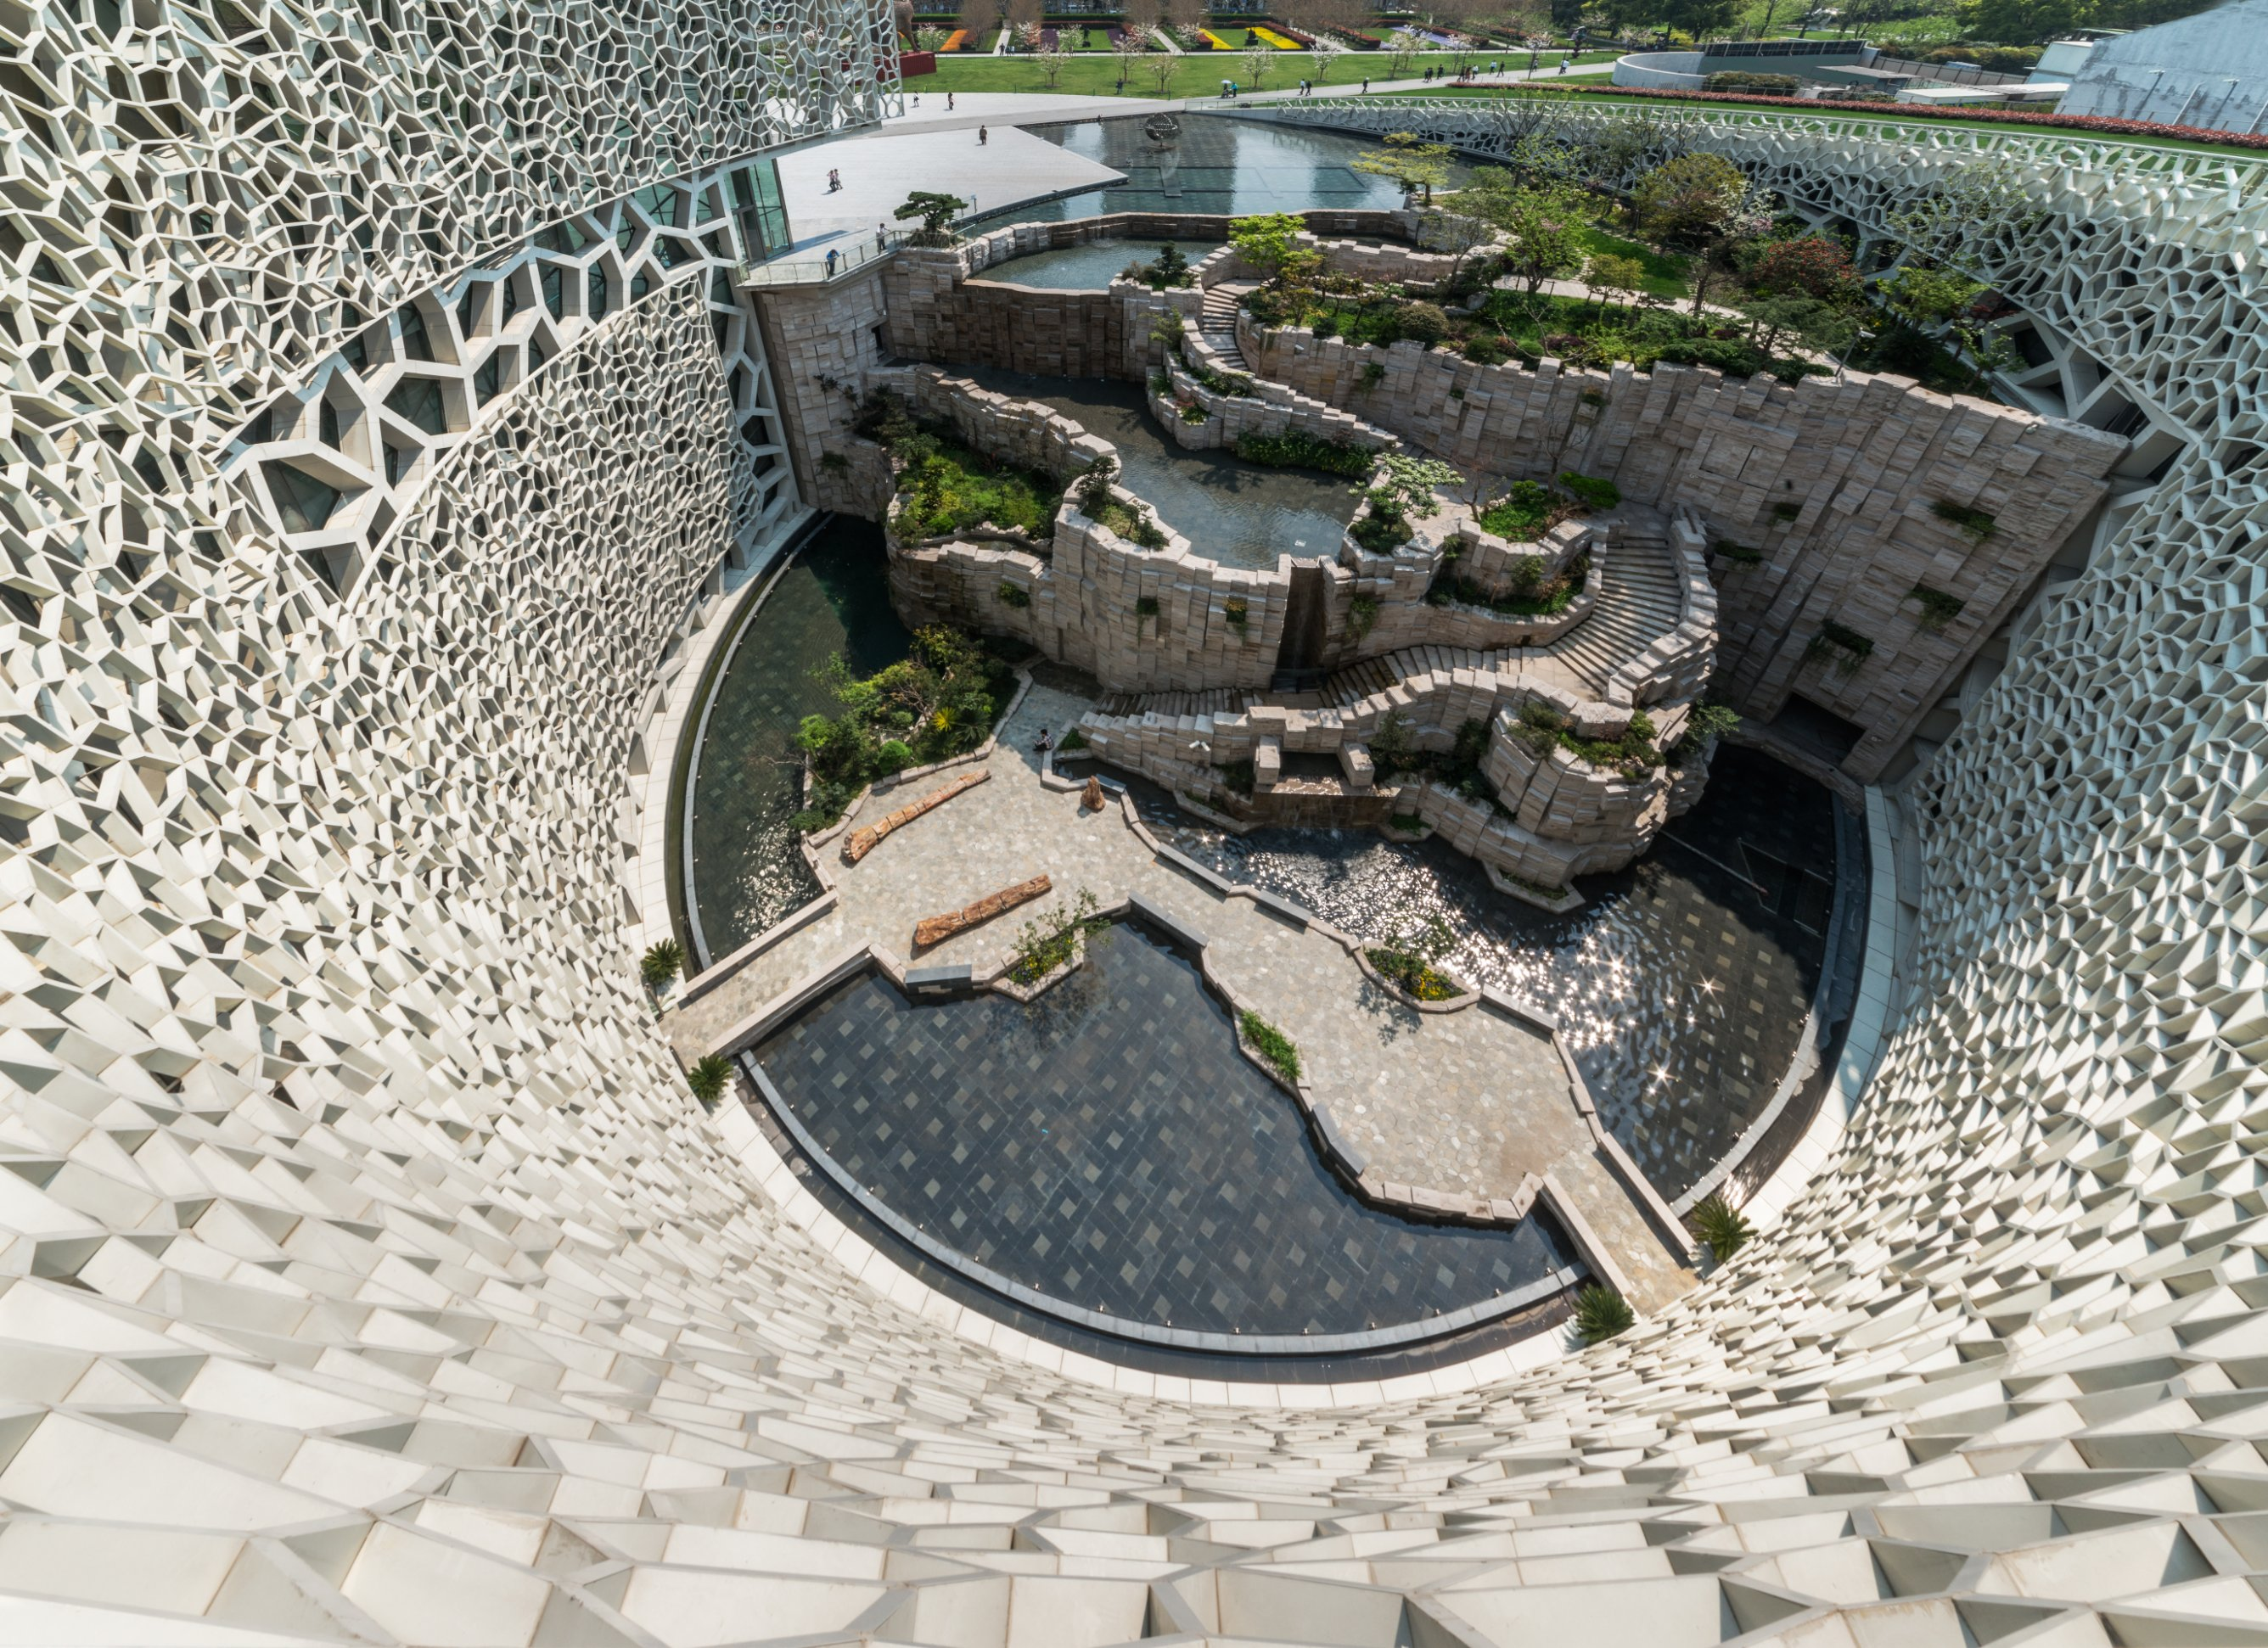 Home to have angered locals is a 30 000 square foot creation of hadid - Home To Have Angered Locals Is A 30 000 Square Foot Creation Of Hadid 21